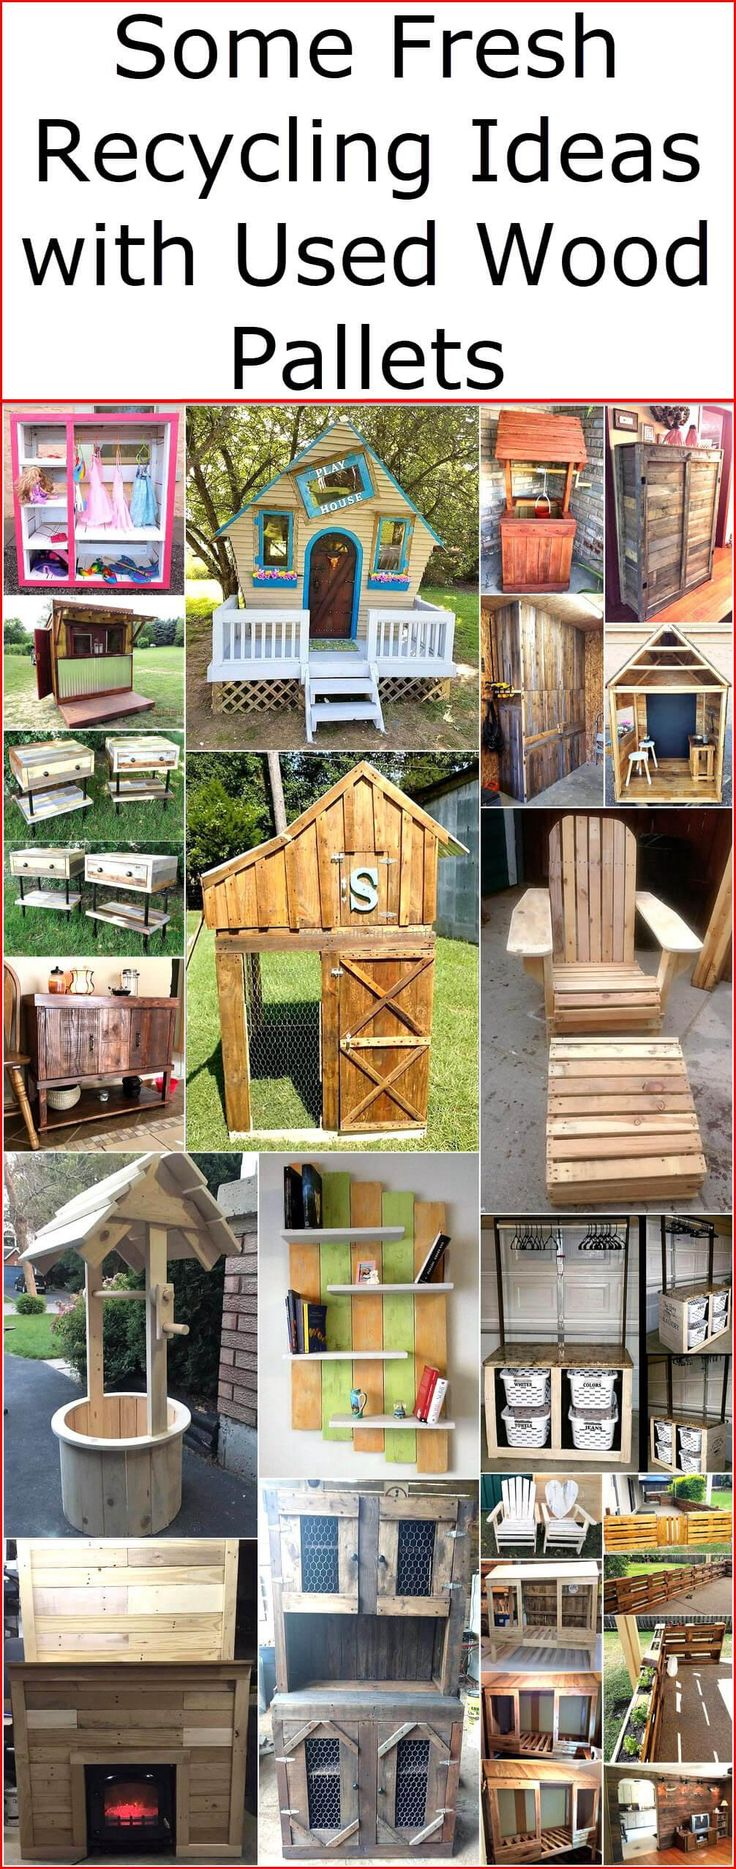 Reused wood pallets plan will able you to craft a beautiful and complete wood pallet playhouse for kids, a thought-provoking pallets shelf and closet, a useful pallets twin bed, a stunning nightstand for your bedroom and much more. So let's indulge you in this awesome and creative activity of recycling and renovate your place with few fabulous and extraordinary wooden products made from useless wood pallets.